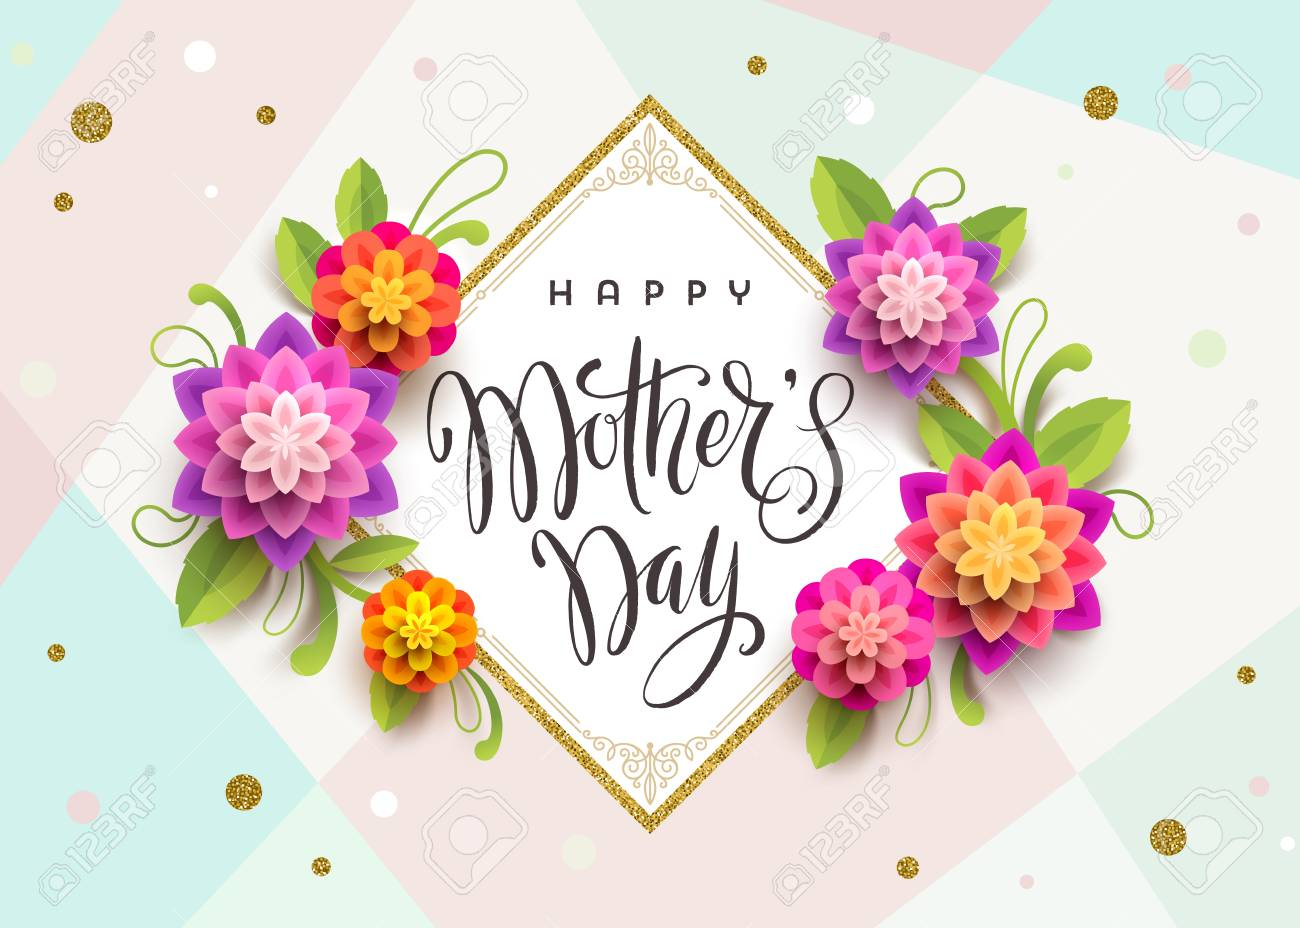 Happy mothers day greeting card with brush calligraphy greeting happy mothers day greeting card with brush calligraphy greeting and flowers vector illustration m4hsunfo